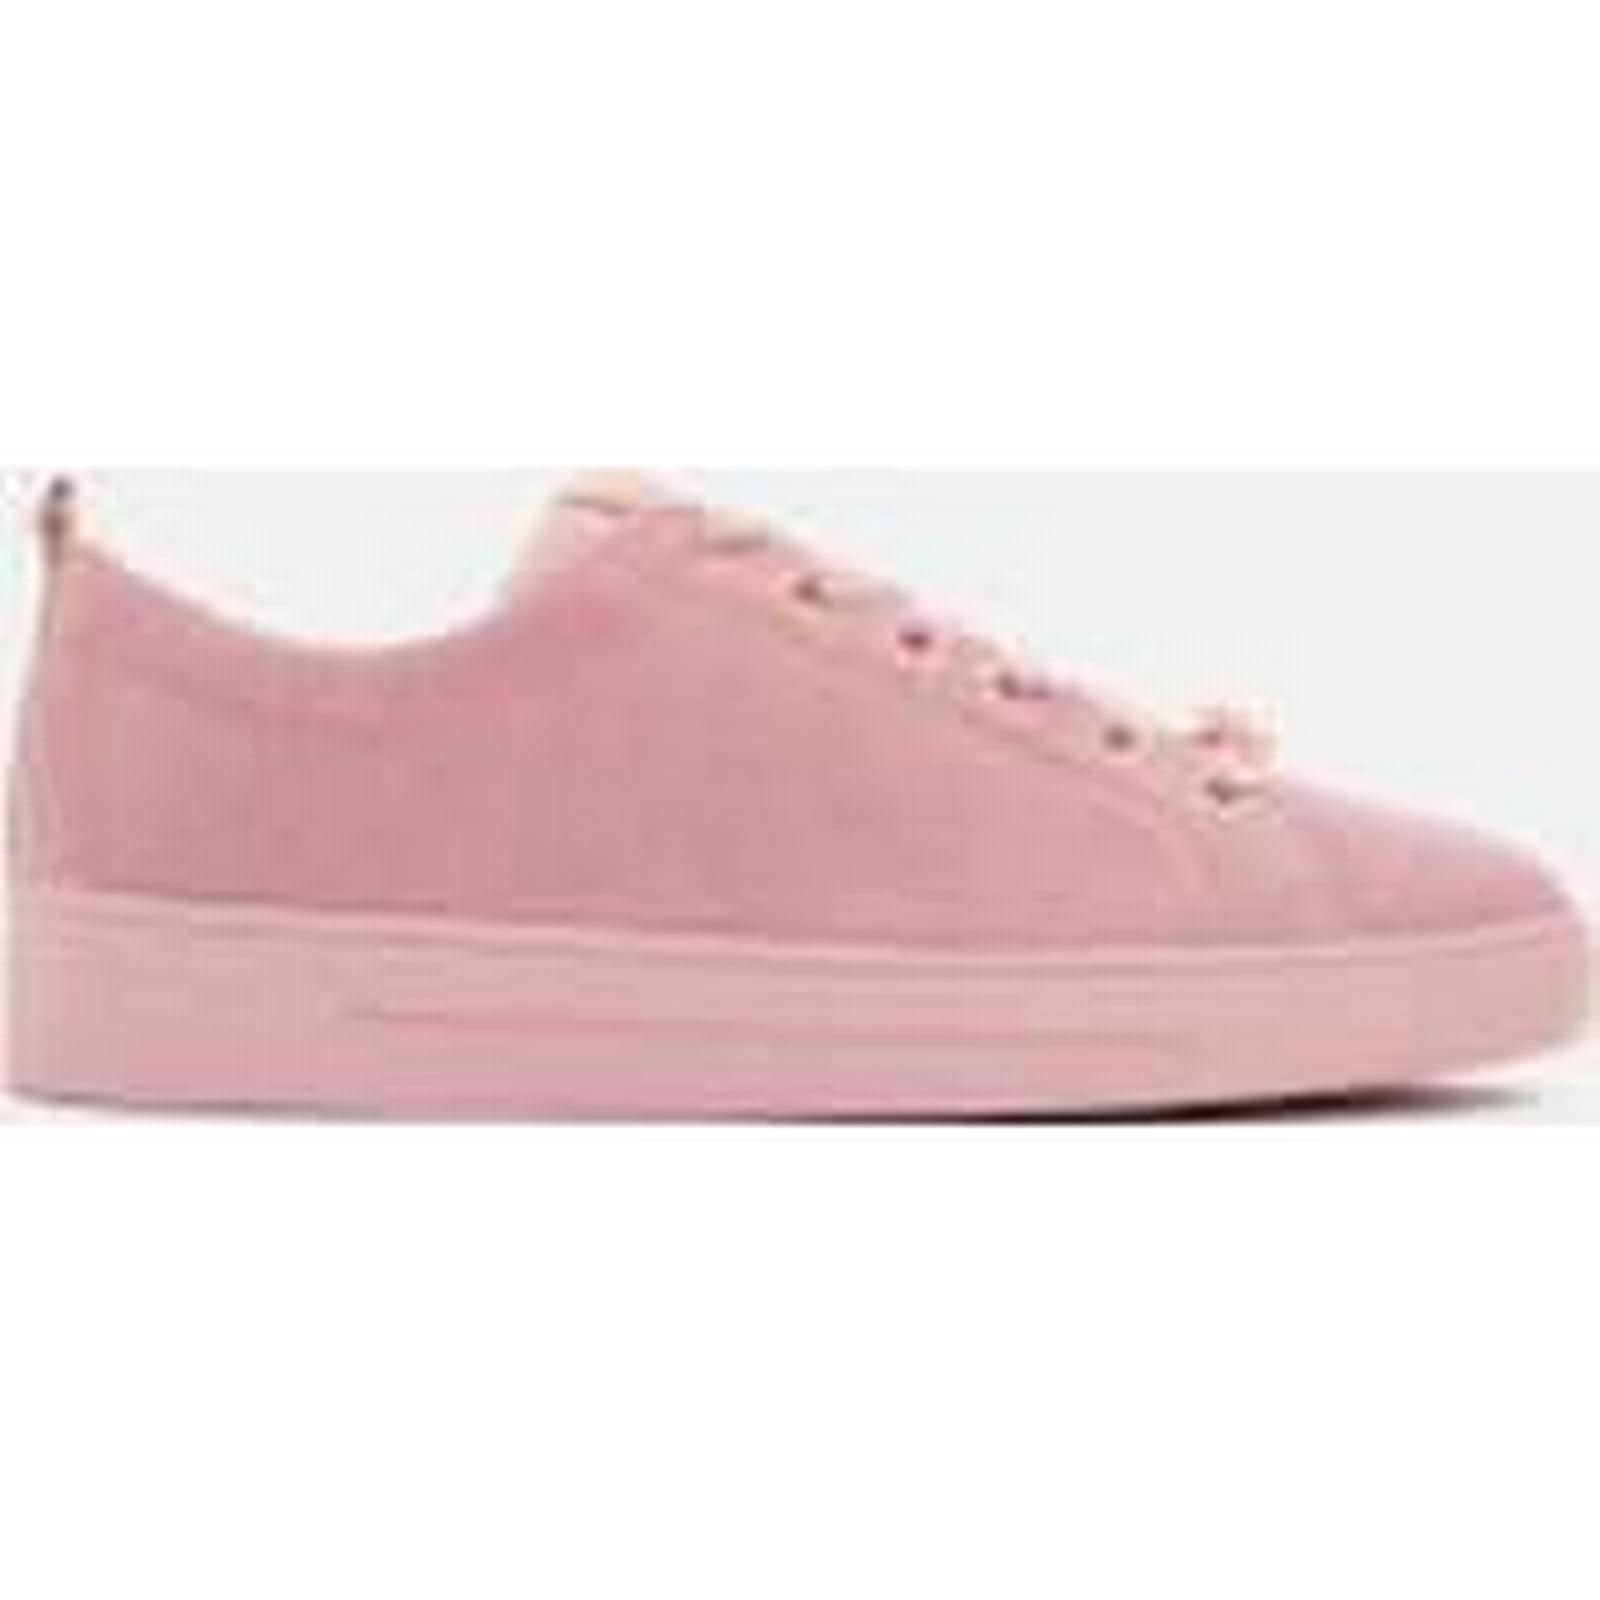 Ted Baker Women's Kelleis Suede Low Top Trainers - Mink - Pink - UK 8 - Mink Pink 0a0314